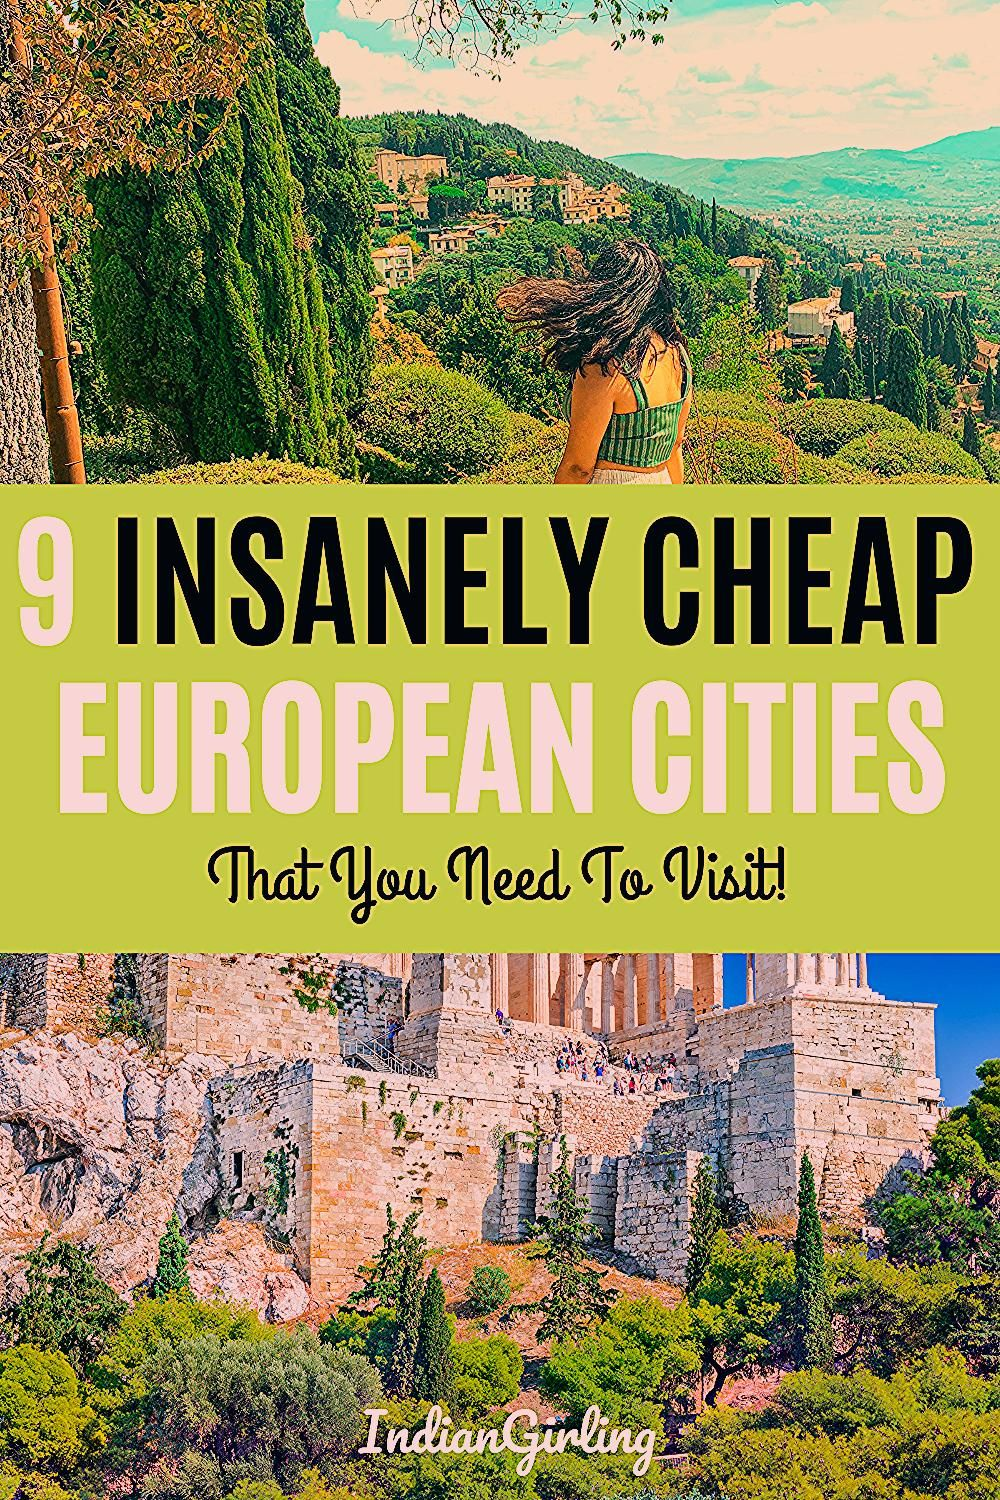 Photo of 9 Insanely Cheap European Cities